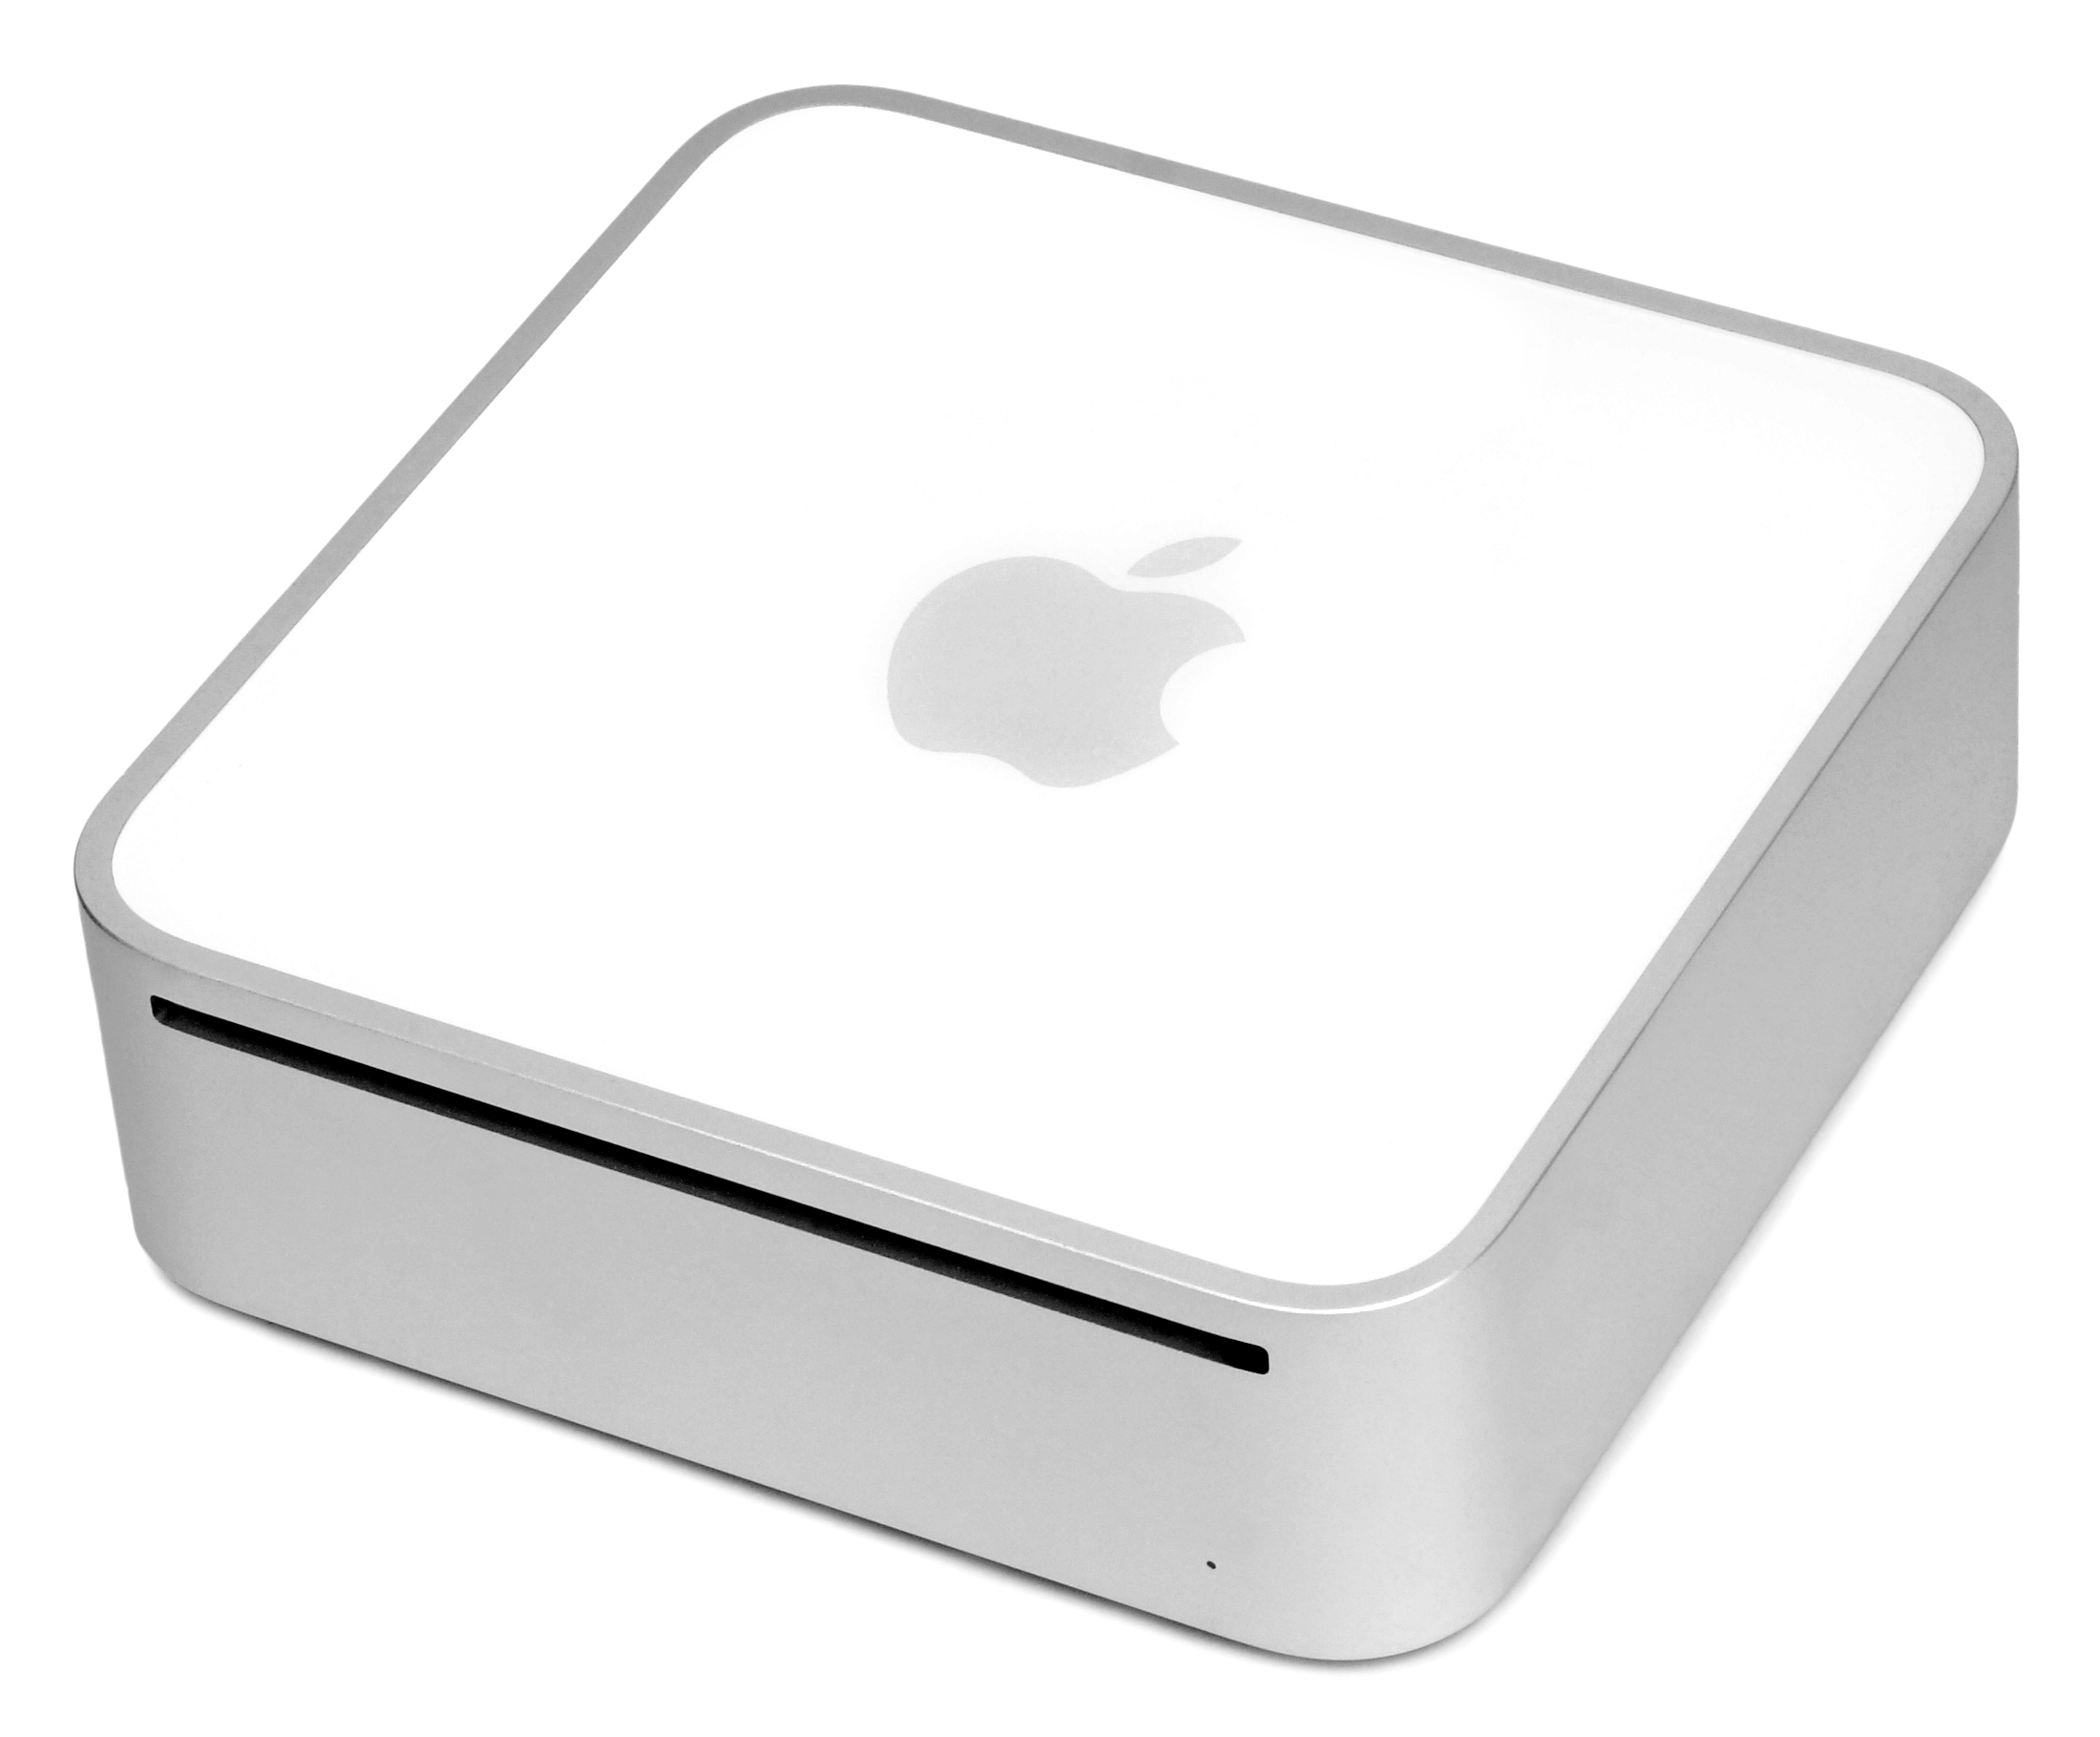 Apple Mac mini 2009